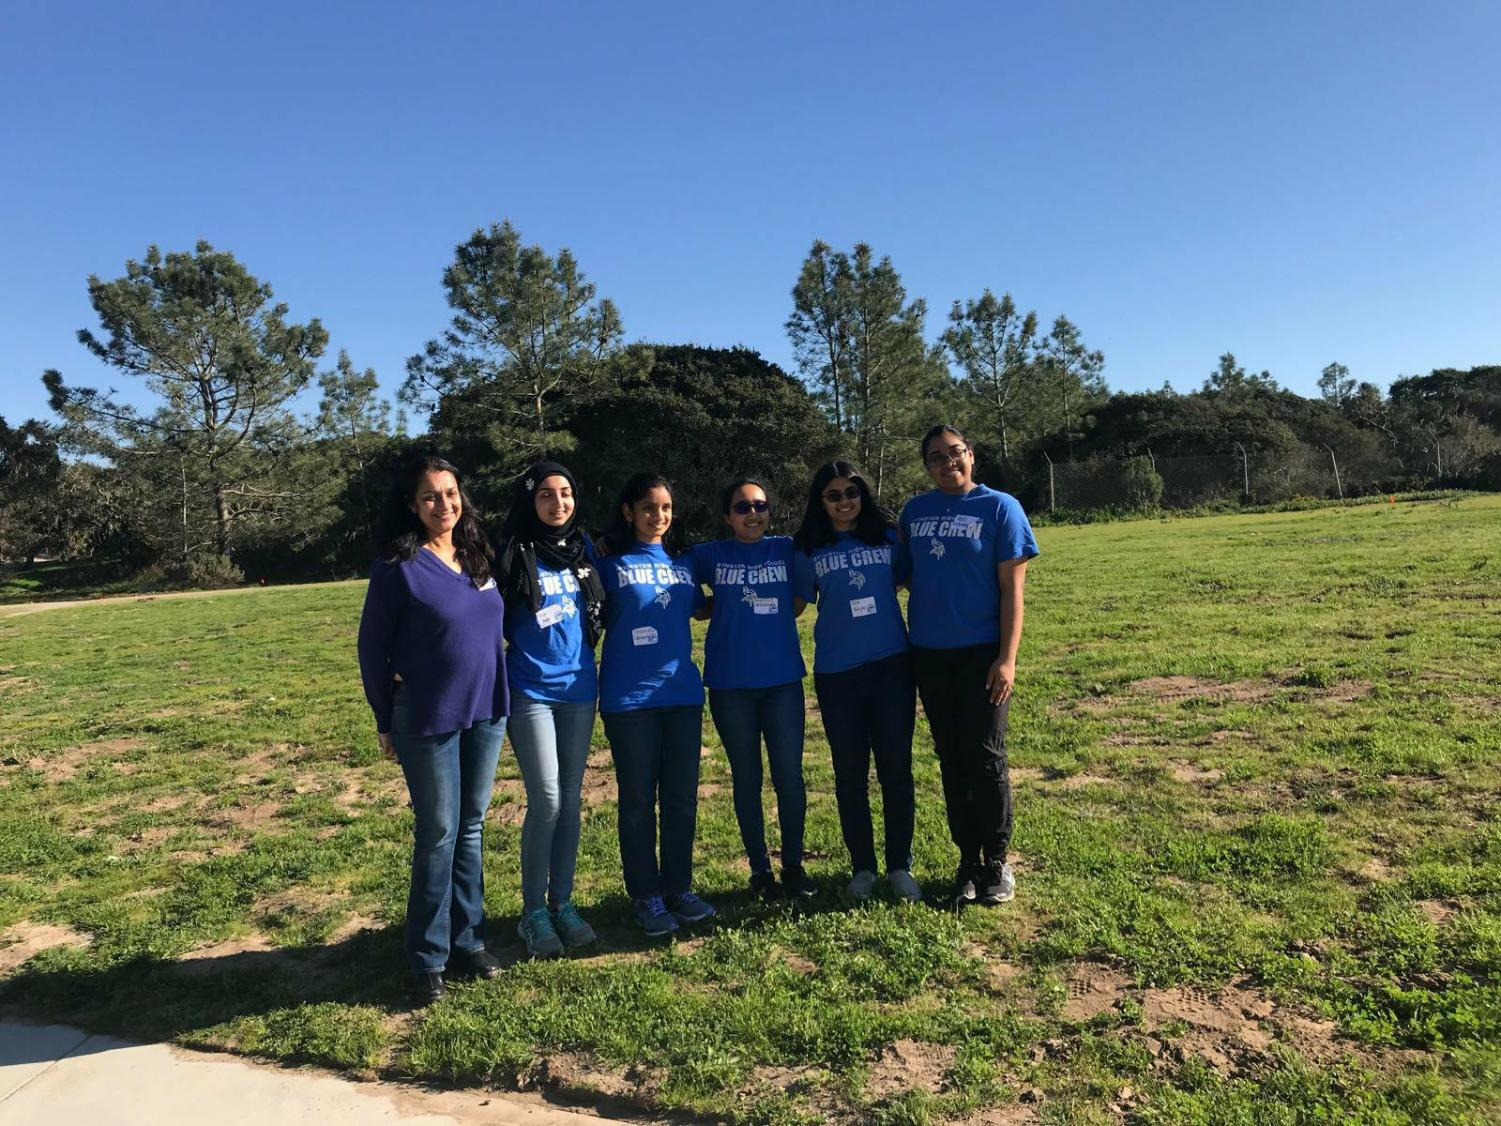 The team of five girls and parental chaperones woke up at around five o'clock in the morning to get to Monterey for the competition on at nine (Lakshmanan Venugopalan).